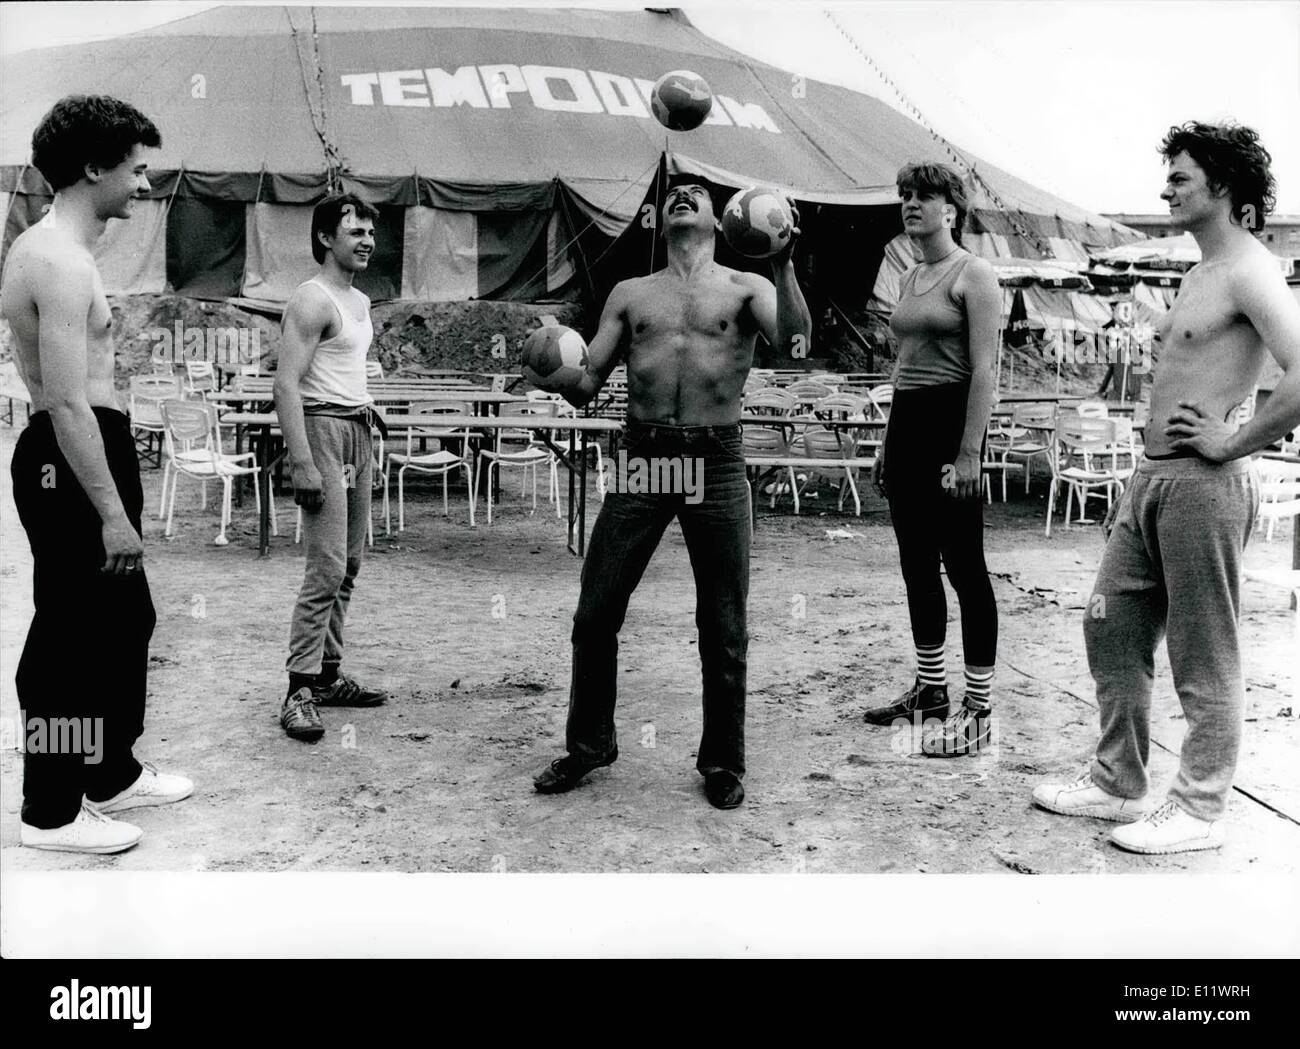 Jun. 06, 1980 - Also in the circus-tent the Gods set before success the perspiration: This sad experience make at the present time 15 juveniles in the age between 19 and 27 years - the pupils of the first and till now solitary circus-school in West-Germany. ''Tempodrom'' is the name for the place on the Alten Potsdamerplatz in Berlin, where the circus-pupils come together. Under the motto ''Patience is the most importance'', the artists in spe got educated in all subjects out of the circus-life by the founder of the school and by skilled artists - Stock Image